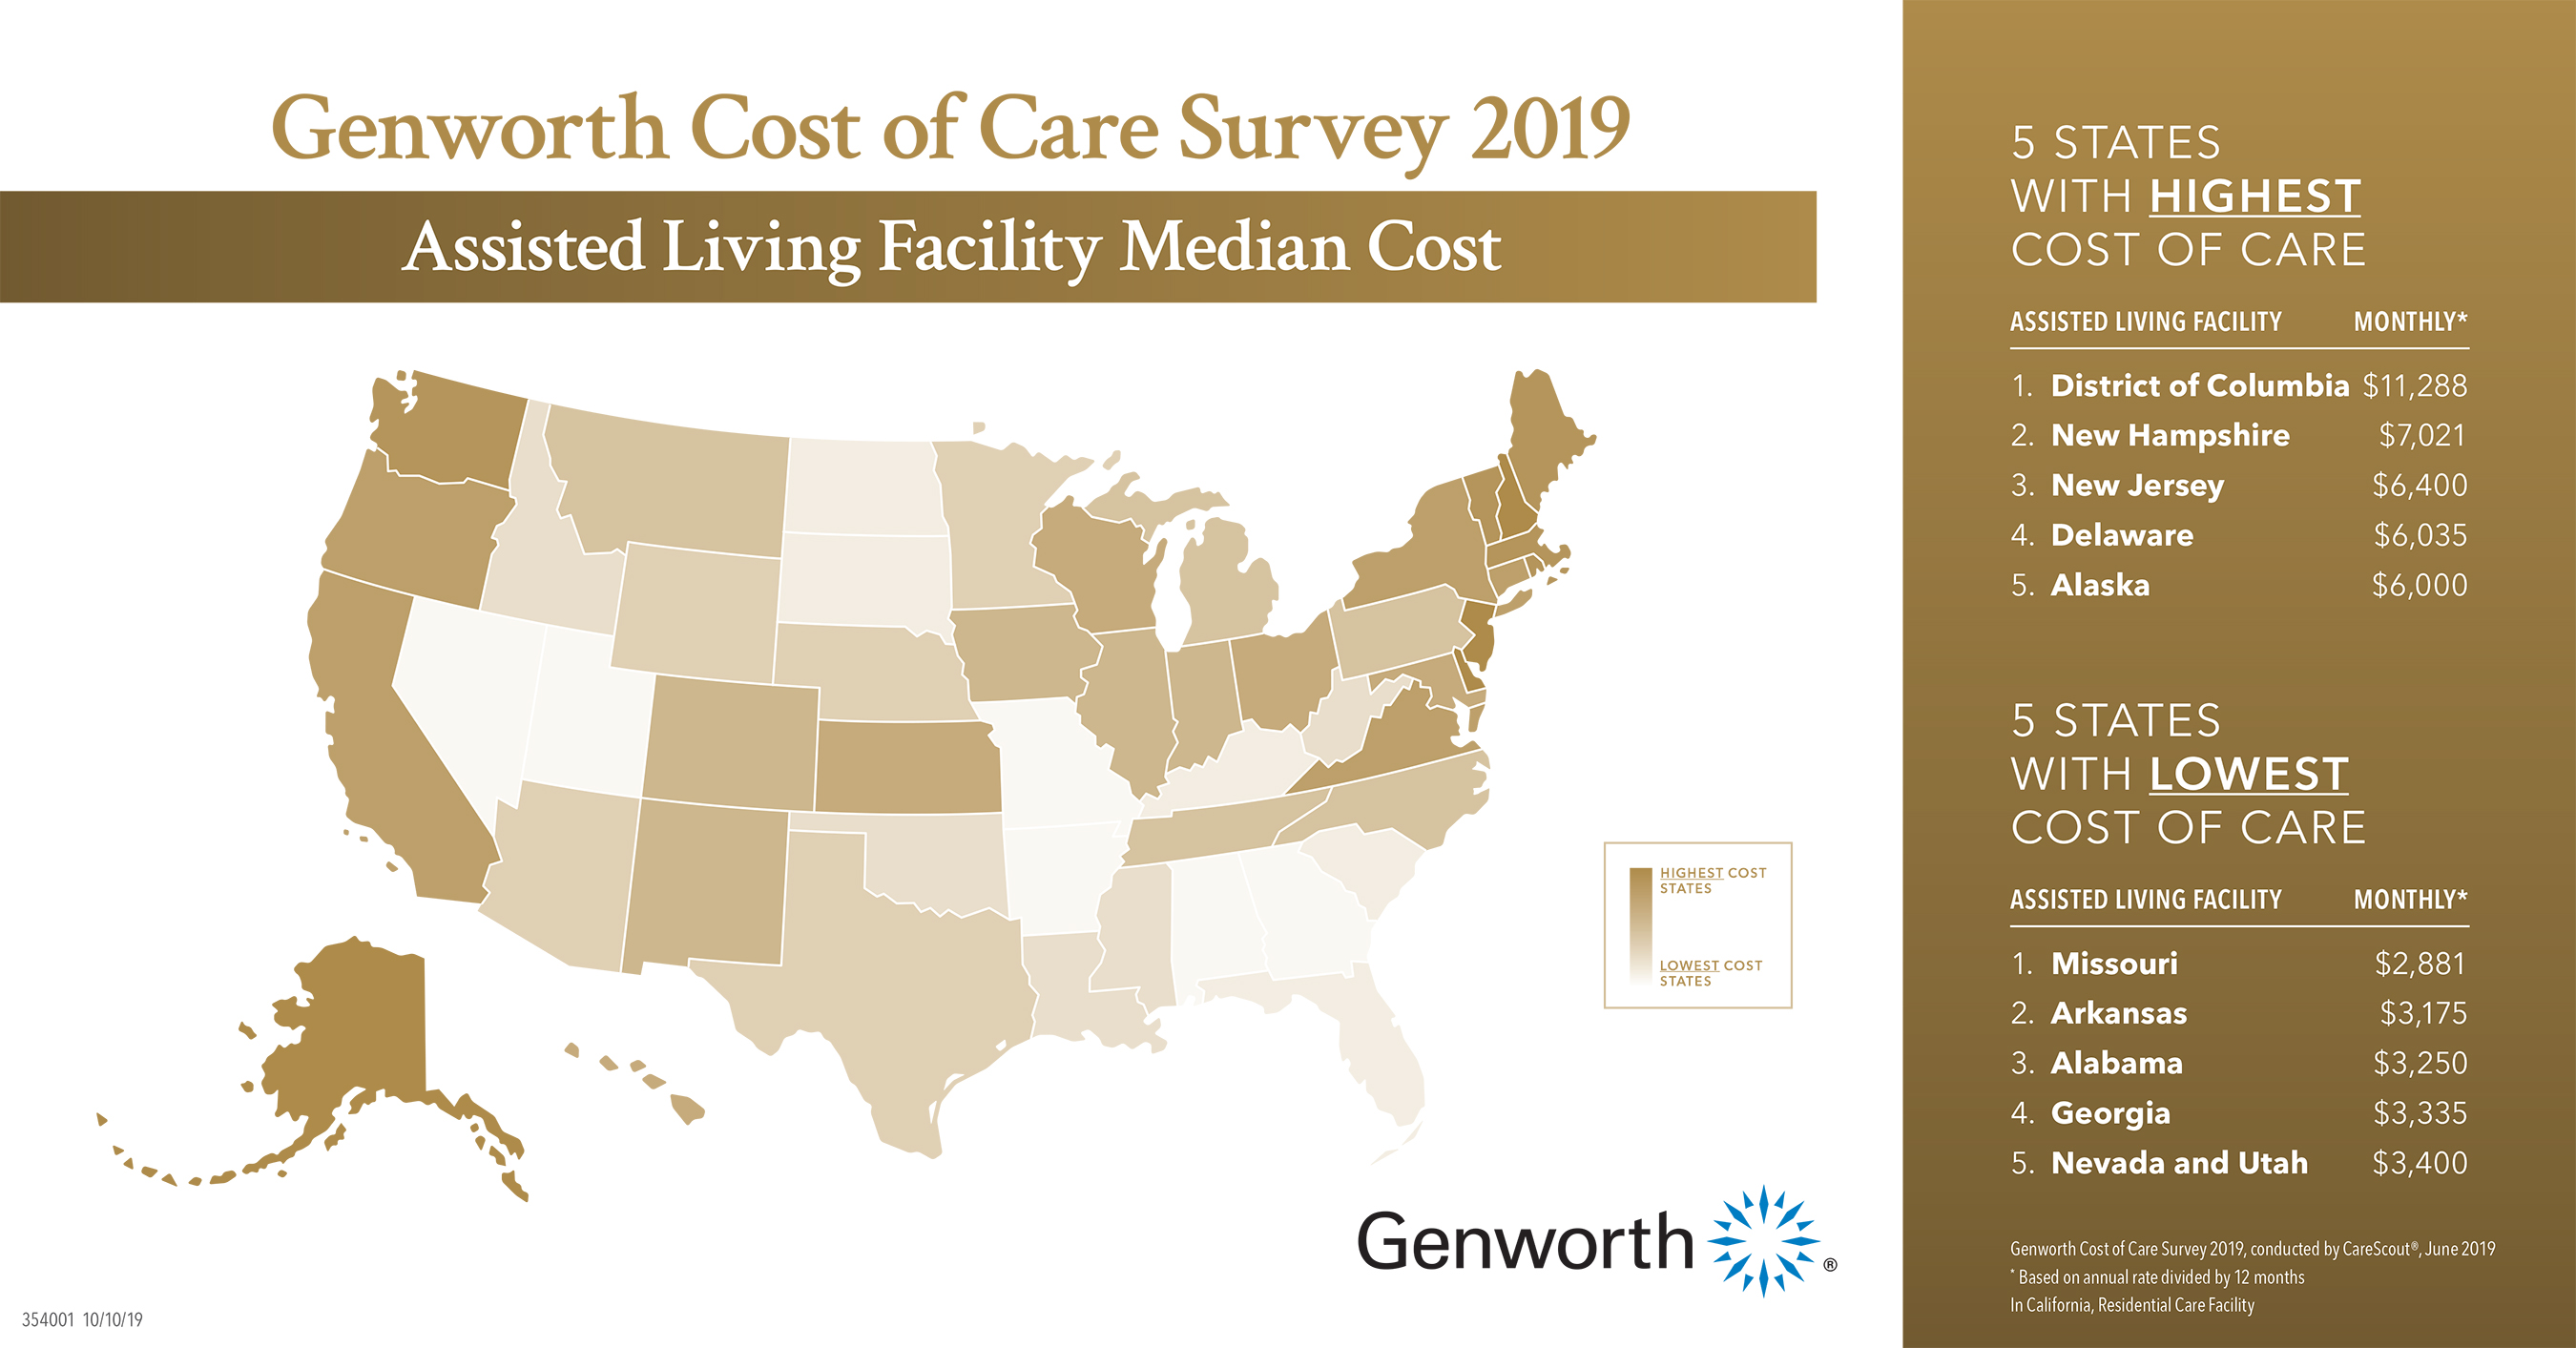 Assisted Living Facility Median Cost